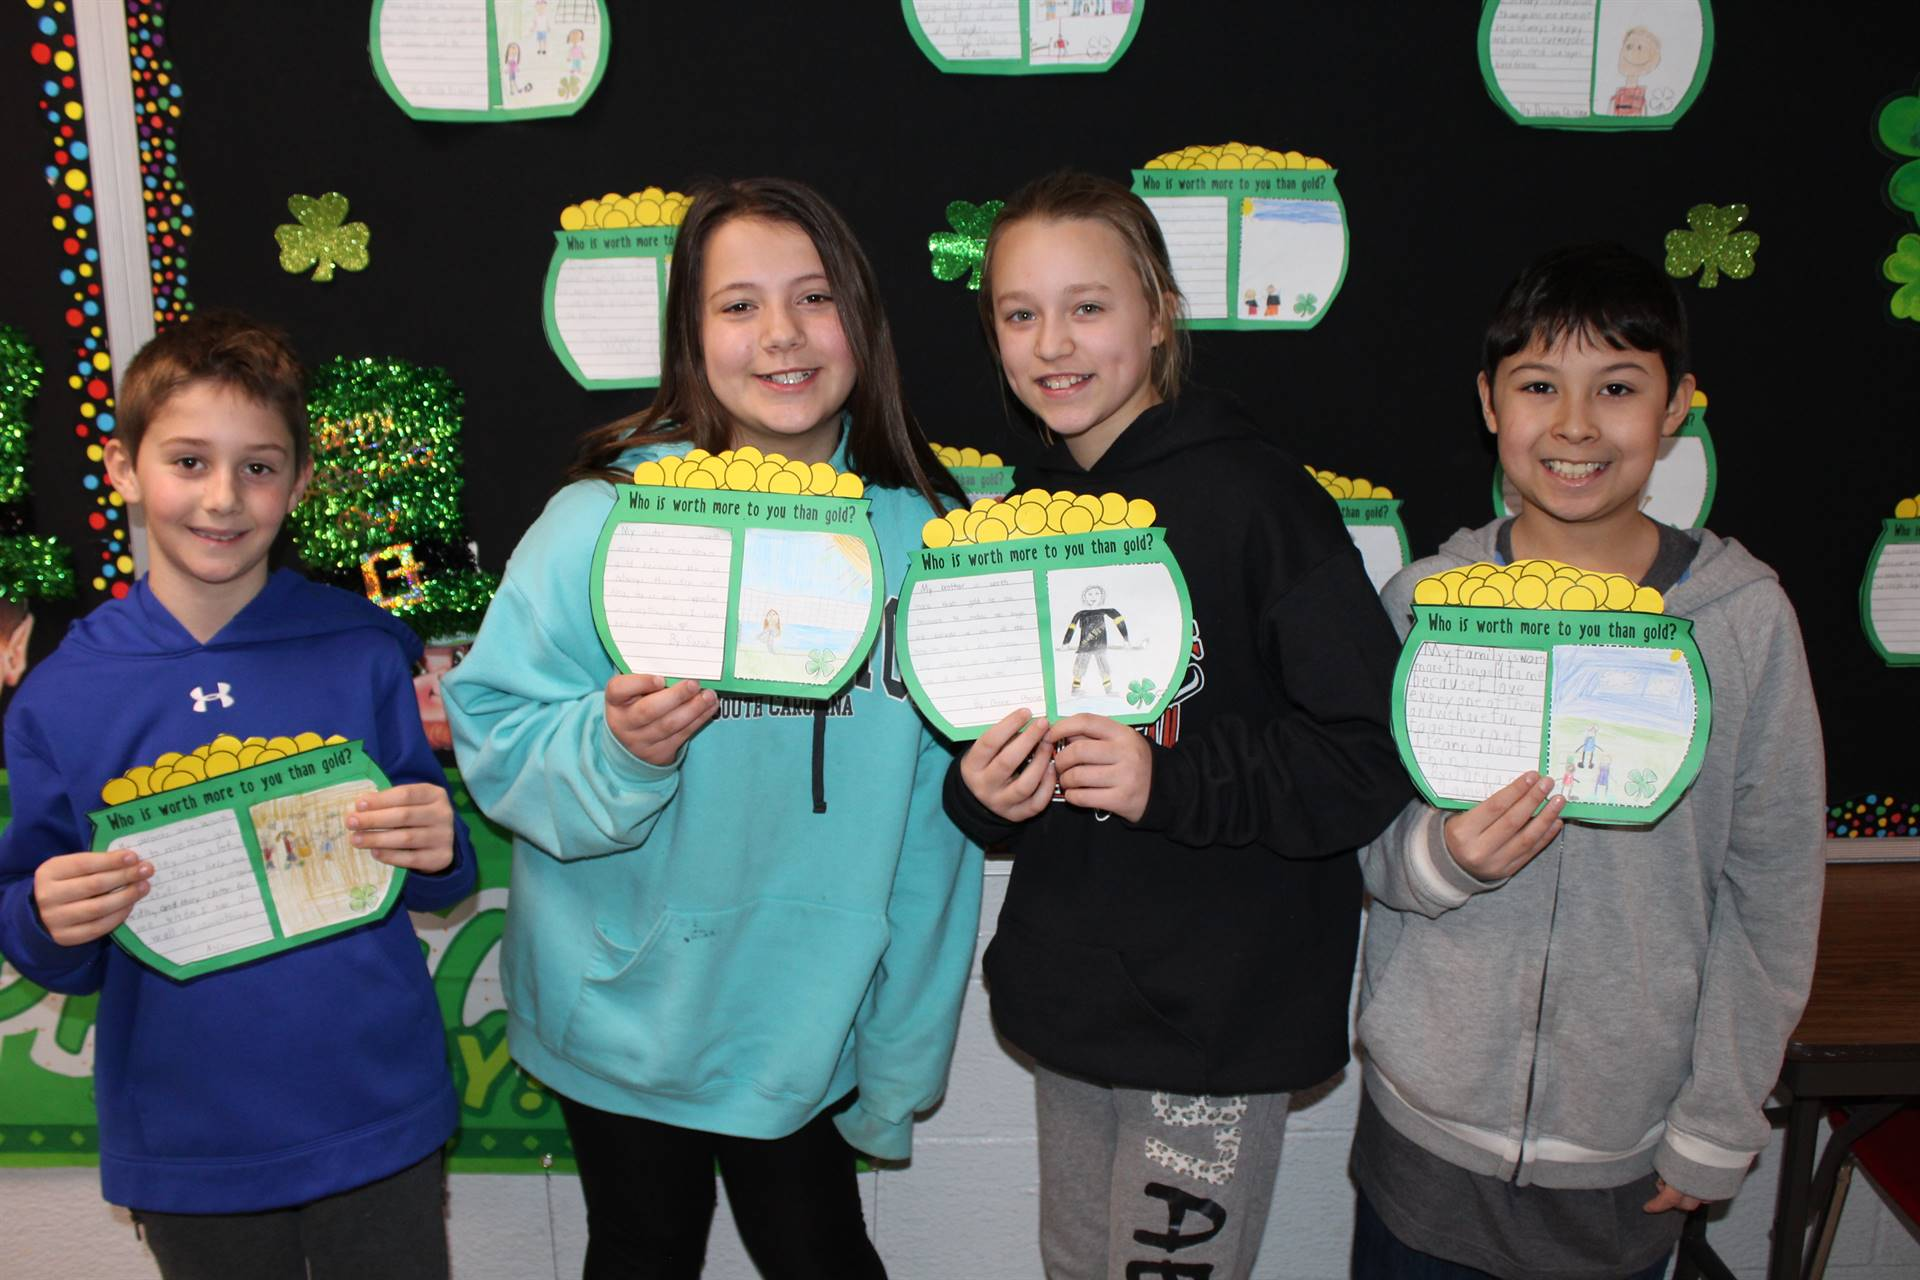 Four students holding paper pots of gold